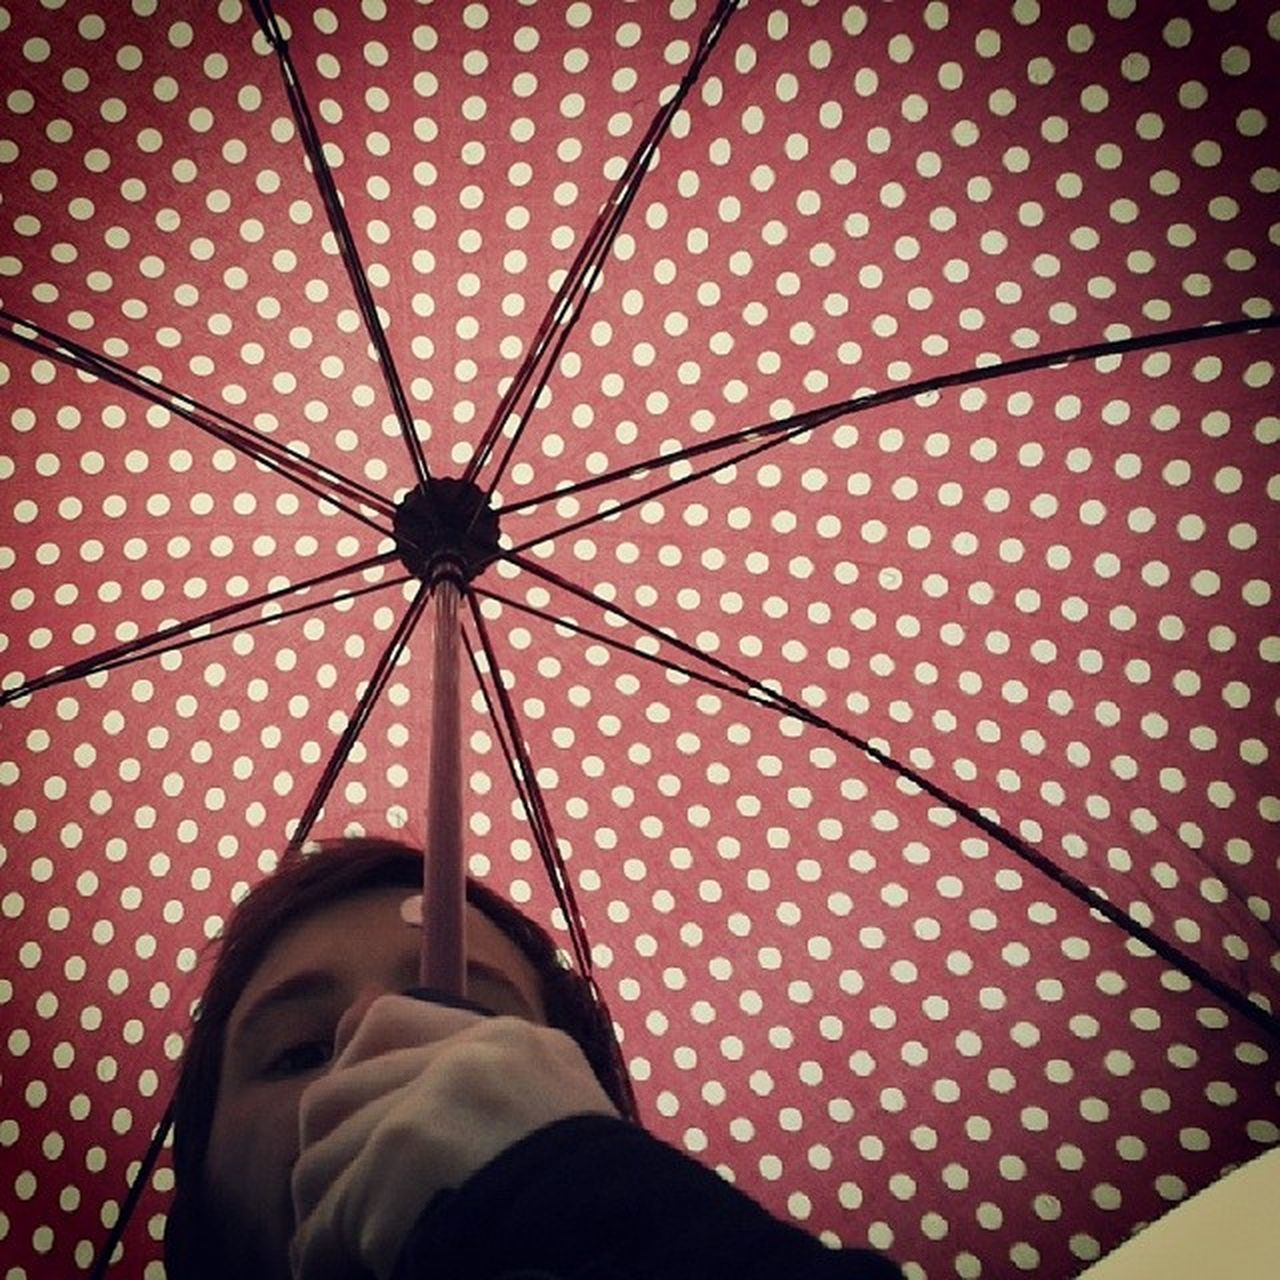 Rain Umbrella Boyfriend Walkingwithyou red spots romantic